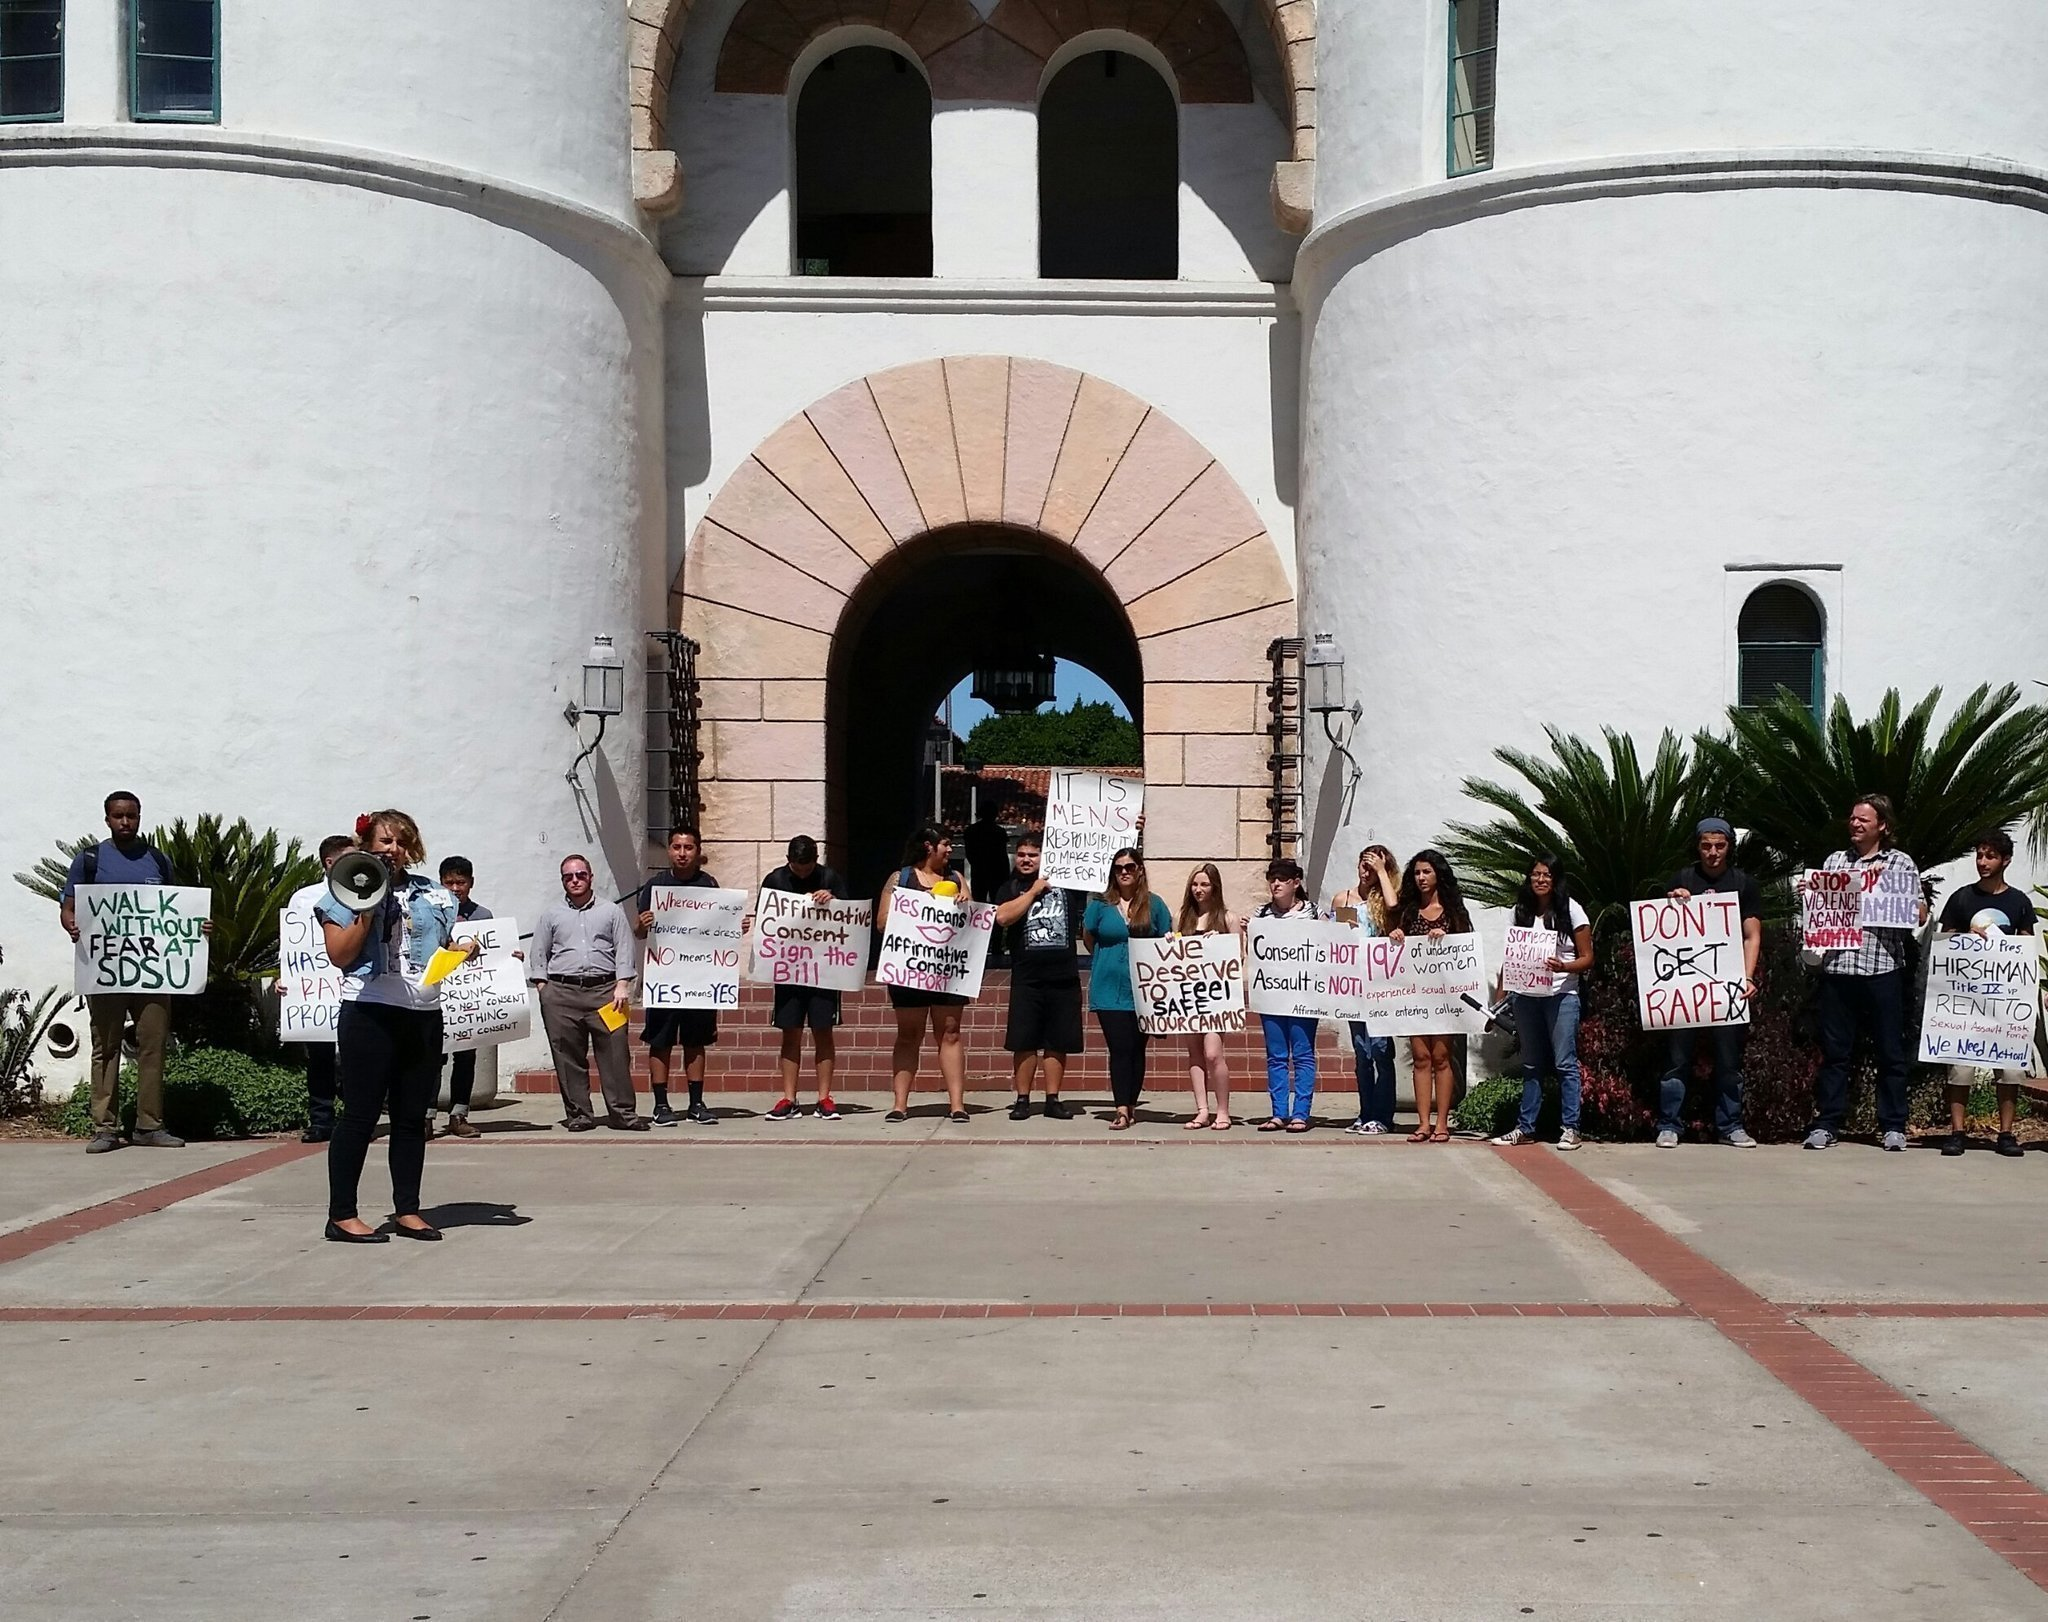 1098 t sdsu - Sdsu S Fraternities Suspend Social Activities To Focus On Preventing Sexual Violence The San Diego Union Tribune